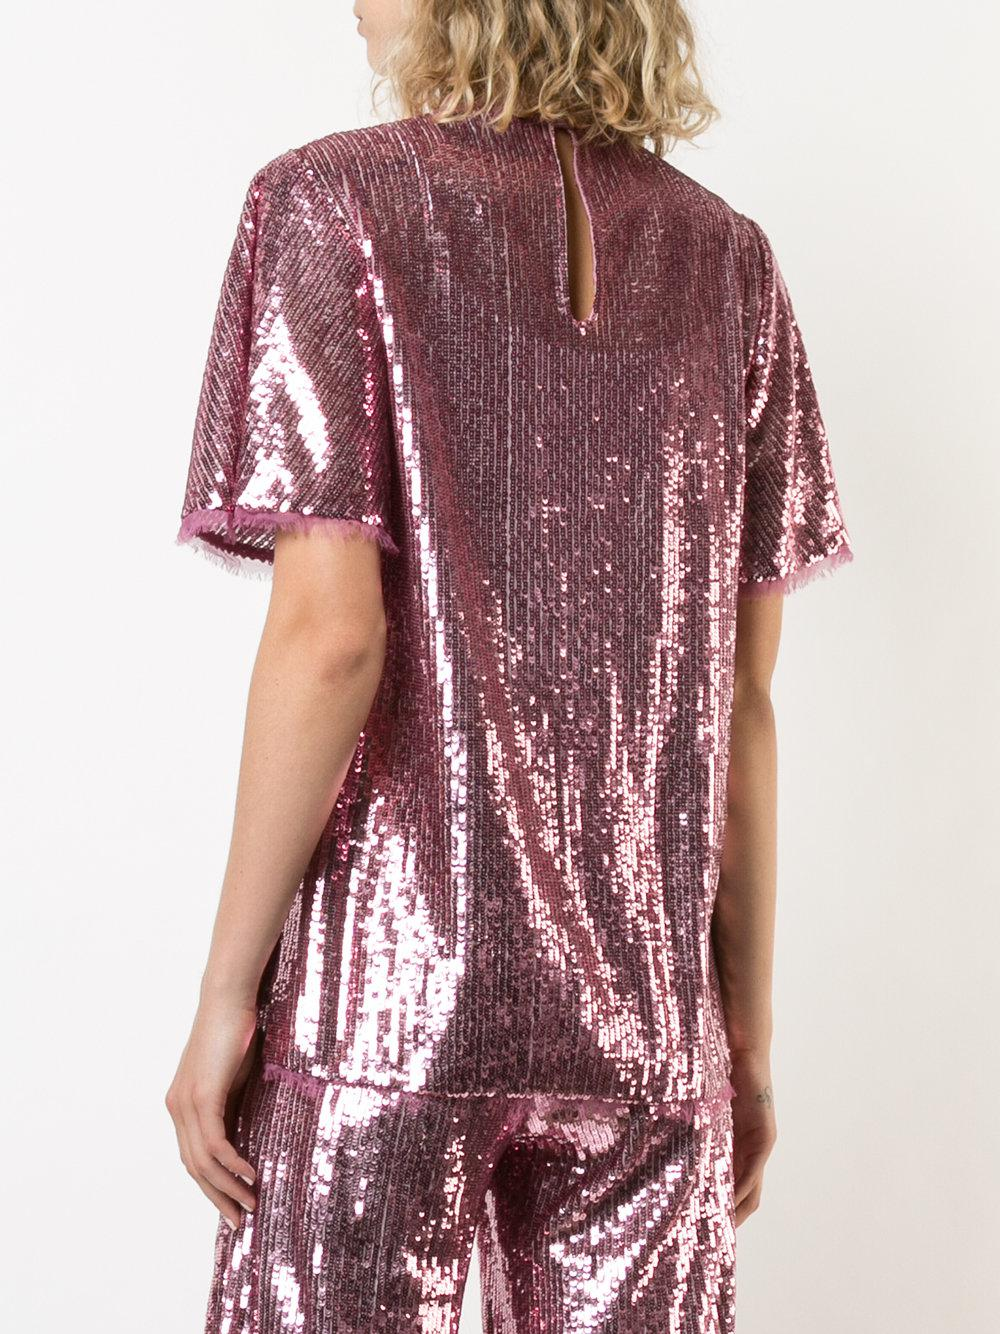 Thomson sequined blouse - Pink & Purple Prabal Gurung